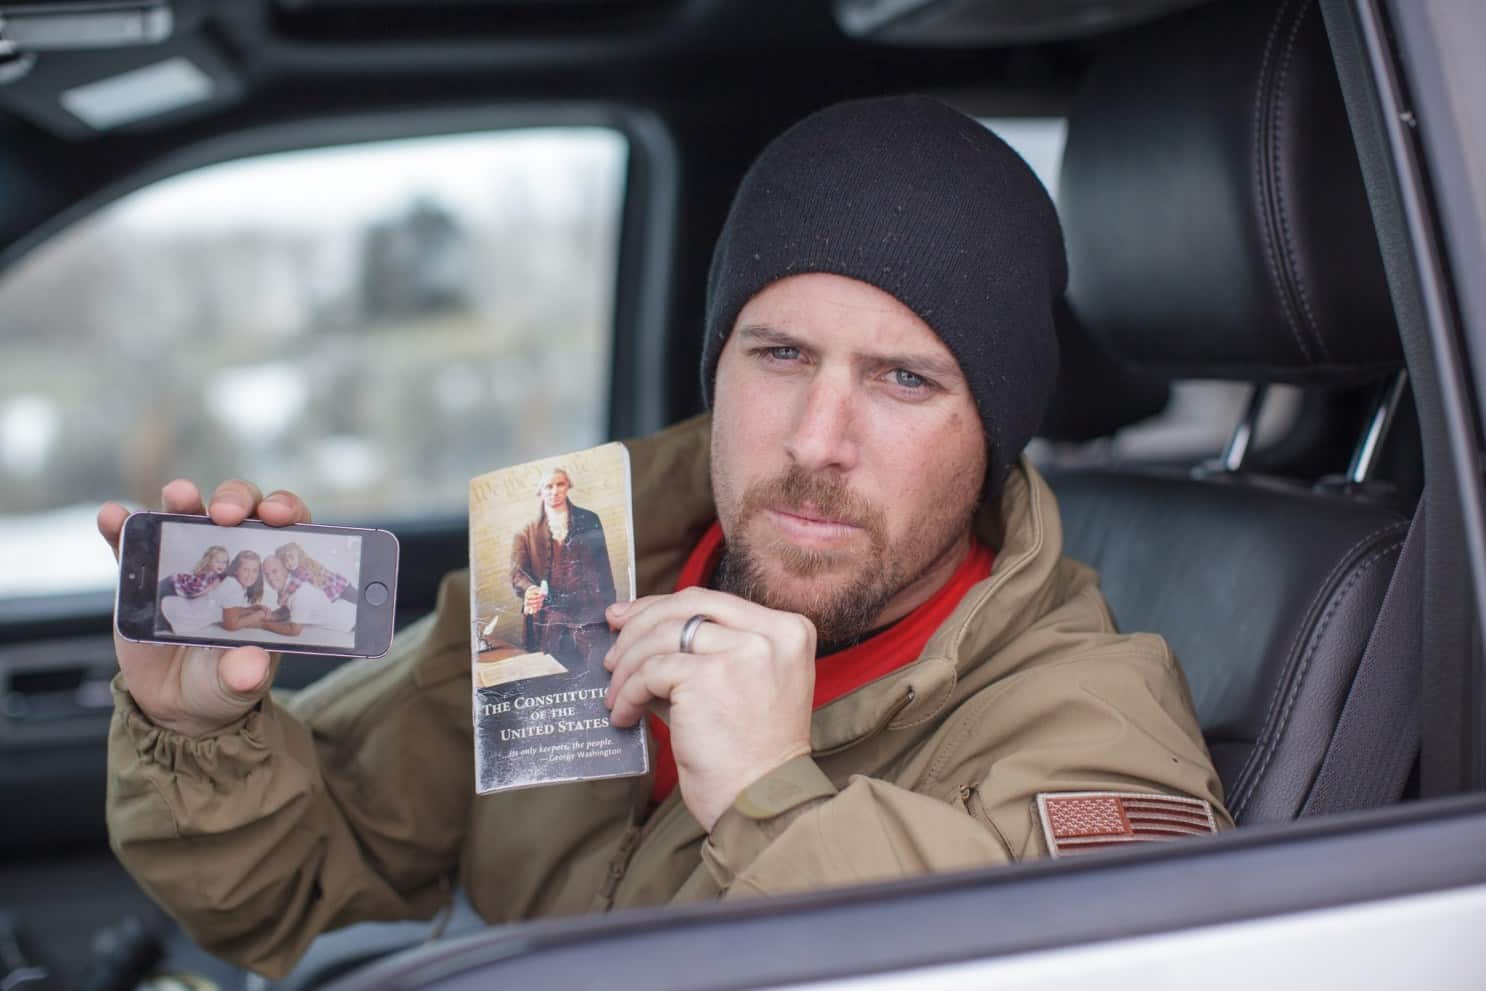 Oregon Standoff Militant Rats Out Plans For IED, Drone Use